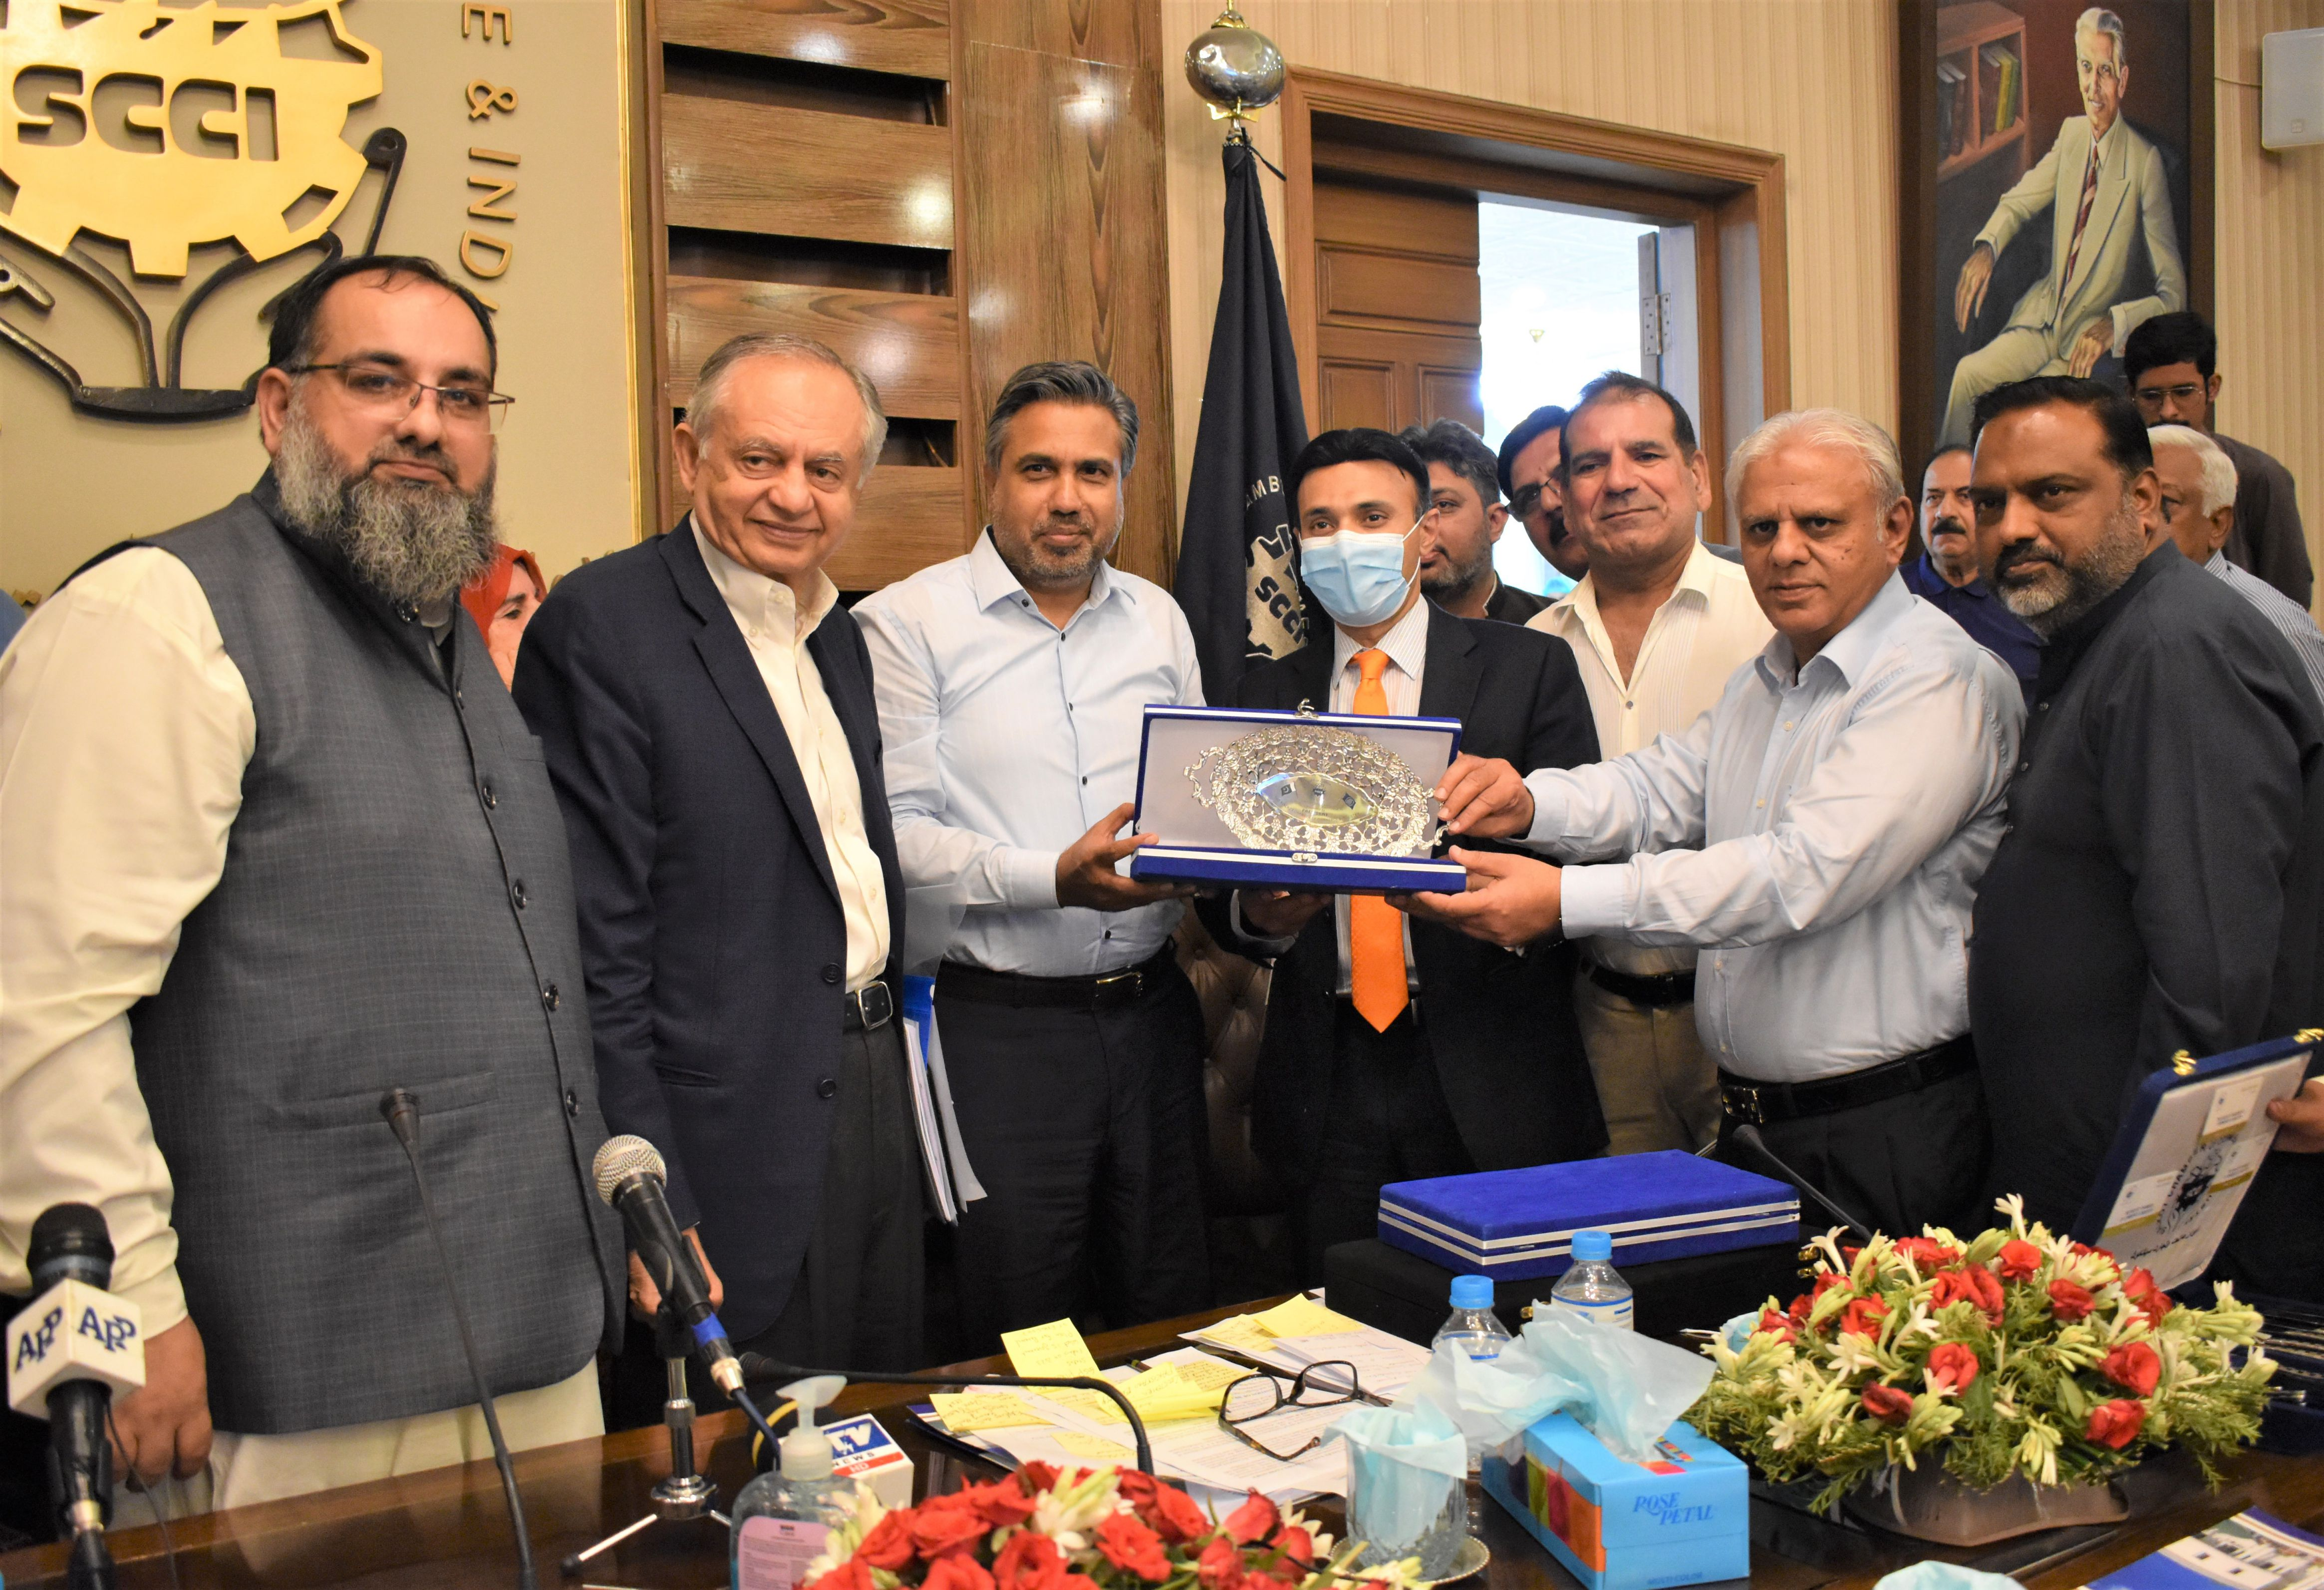 On July 17, 2021, Mr. Syed Rafeo Bashir Shah, Executive Director General, Ministry of Commerce visited Sialkot Chamber of Commerce & Industry. Mr. Qaisar Iqbal Baryar, President, Mr. Khuram Aslam, Senior Vice President and Mr. Ansar Aziz Puri, Vice President SCCI received the Honorable Guest and had discussion on multiple issues including EDF projects proposed by SCCI and Legalization\Attestation of Commercial documents.